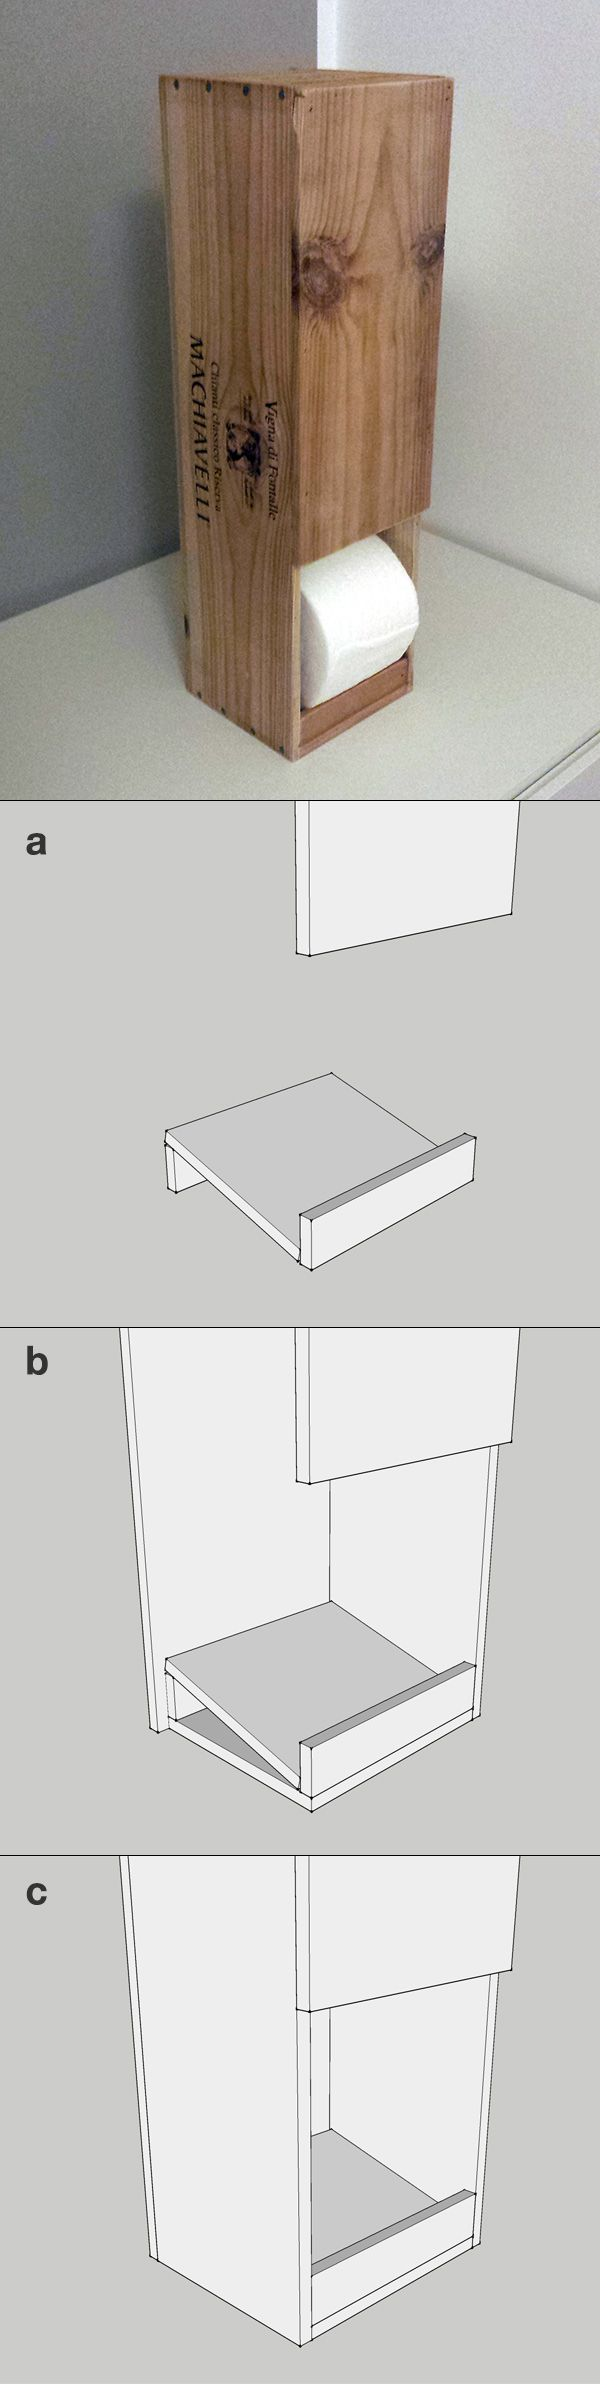 Toilet paper rolls dispenser. Cut the cover of a wine wooden box and glue the base (a) inside it (b). Here you have a nice dispenser that holds four rolls (c).